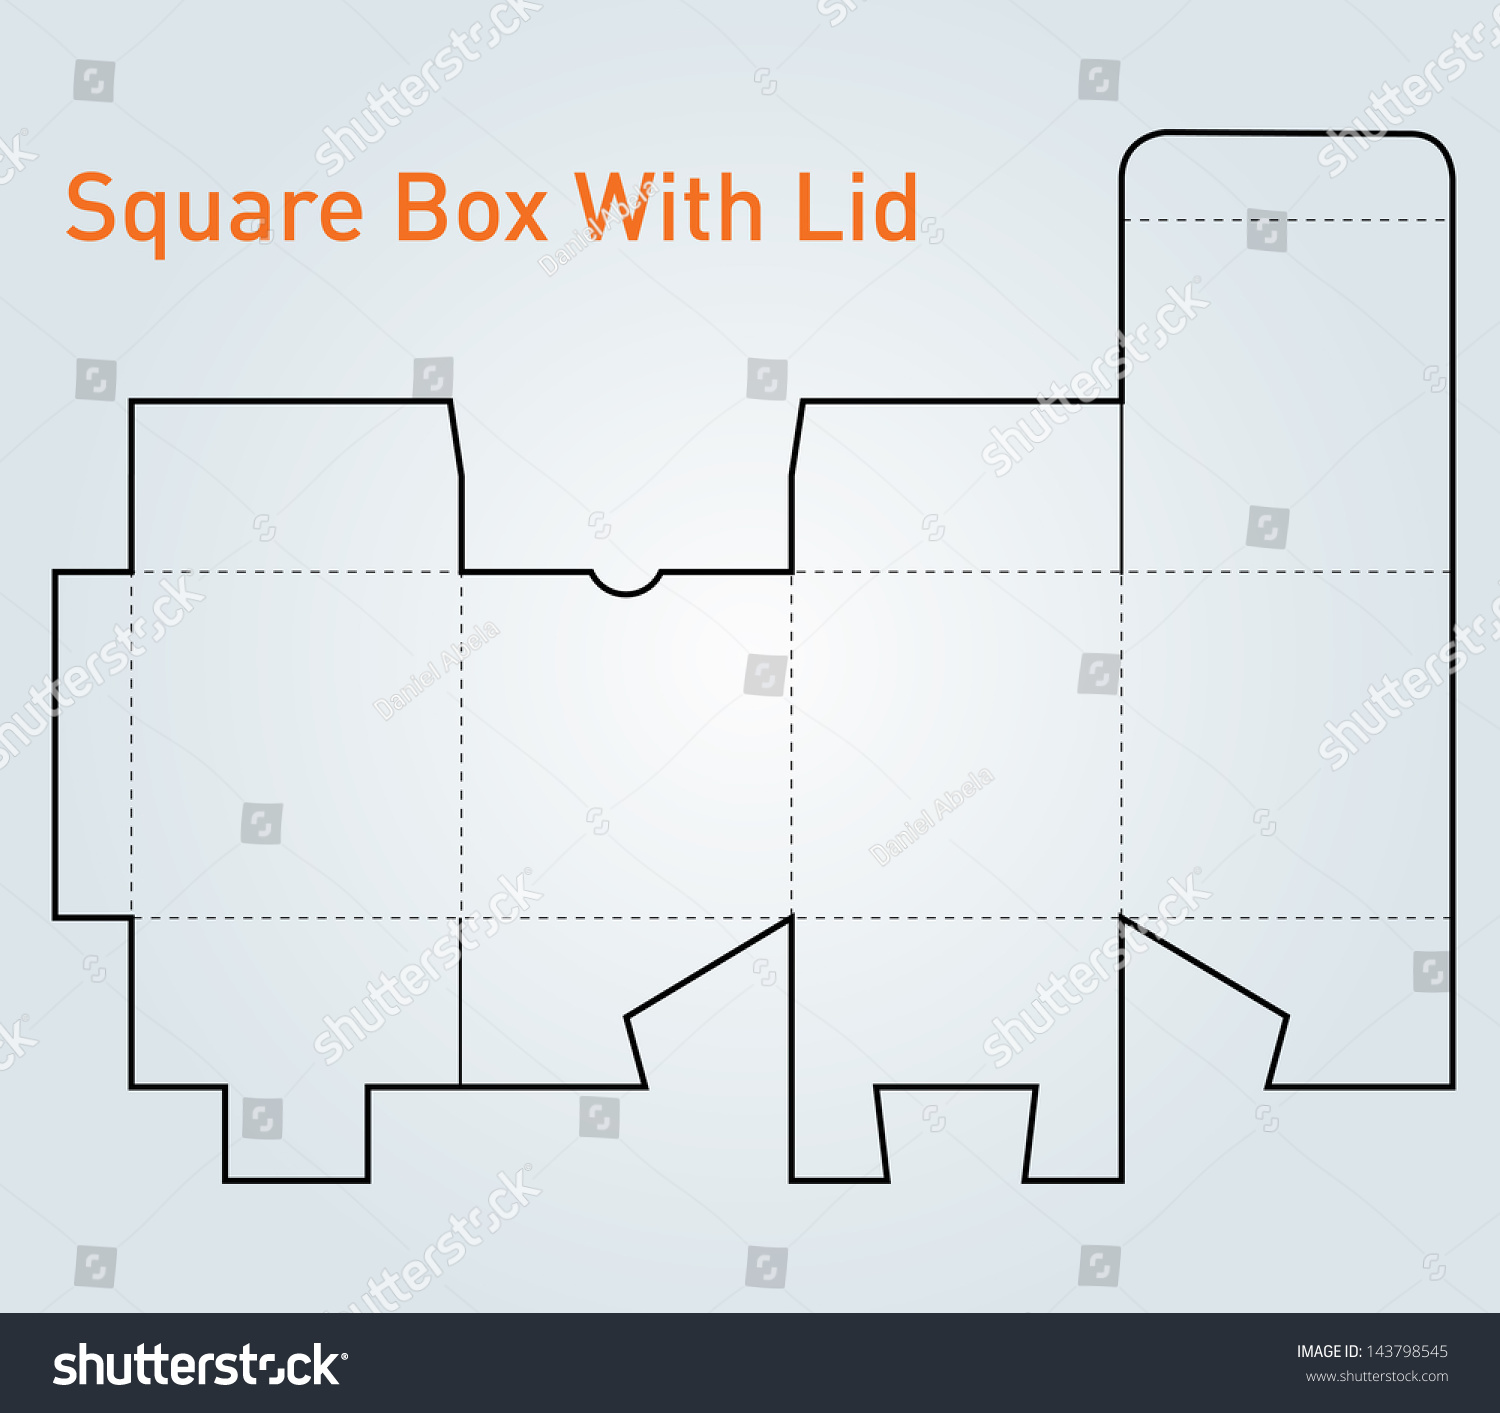 Packaging Square Box With Lid Template Vector - 143798545 ...